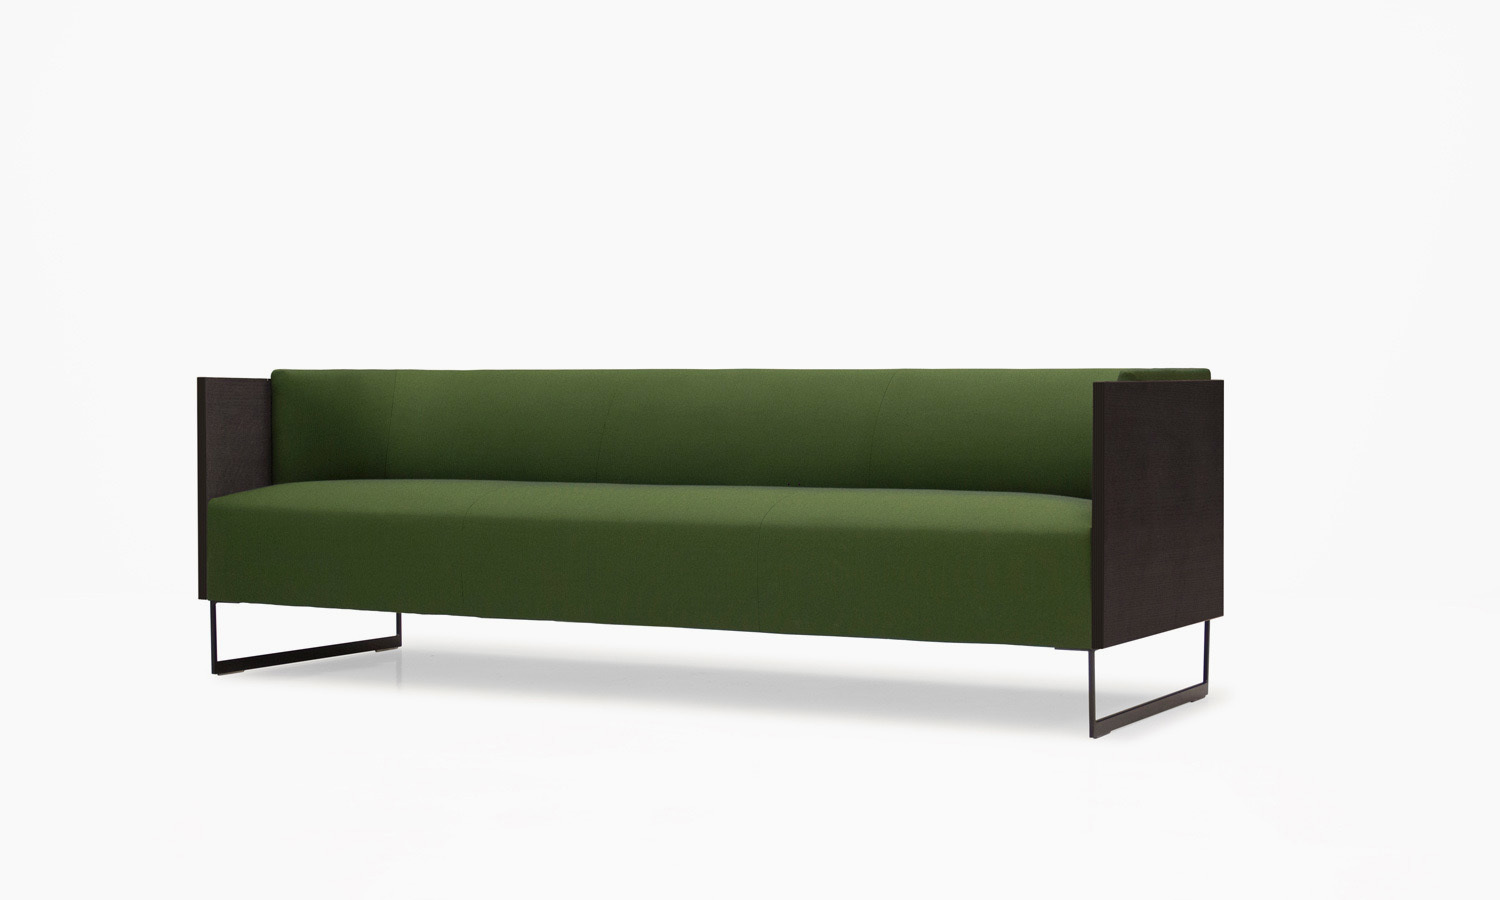 Joquer Deck Sofa Contract 01